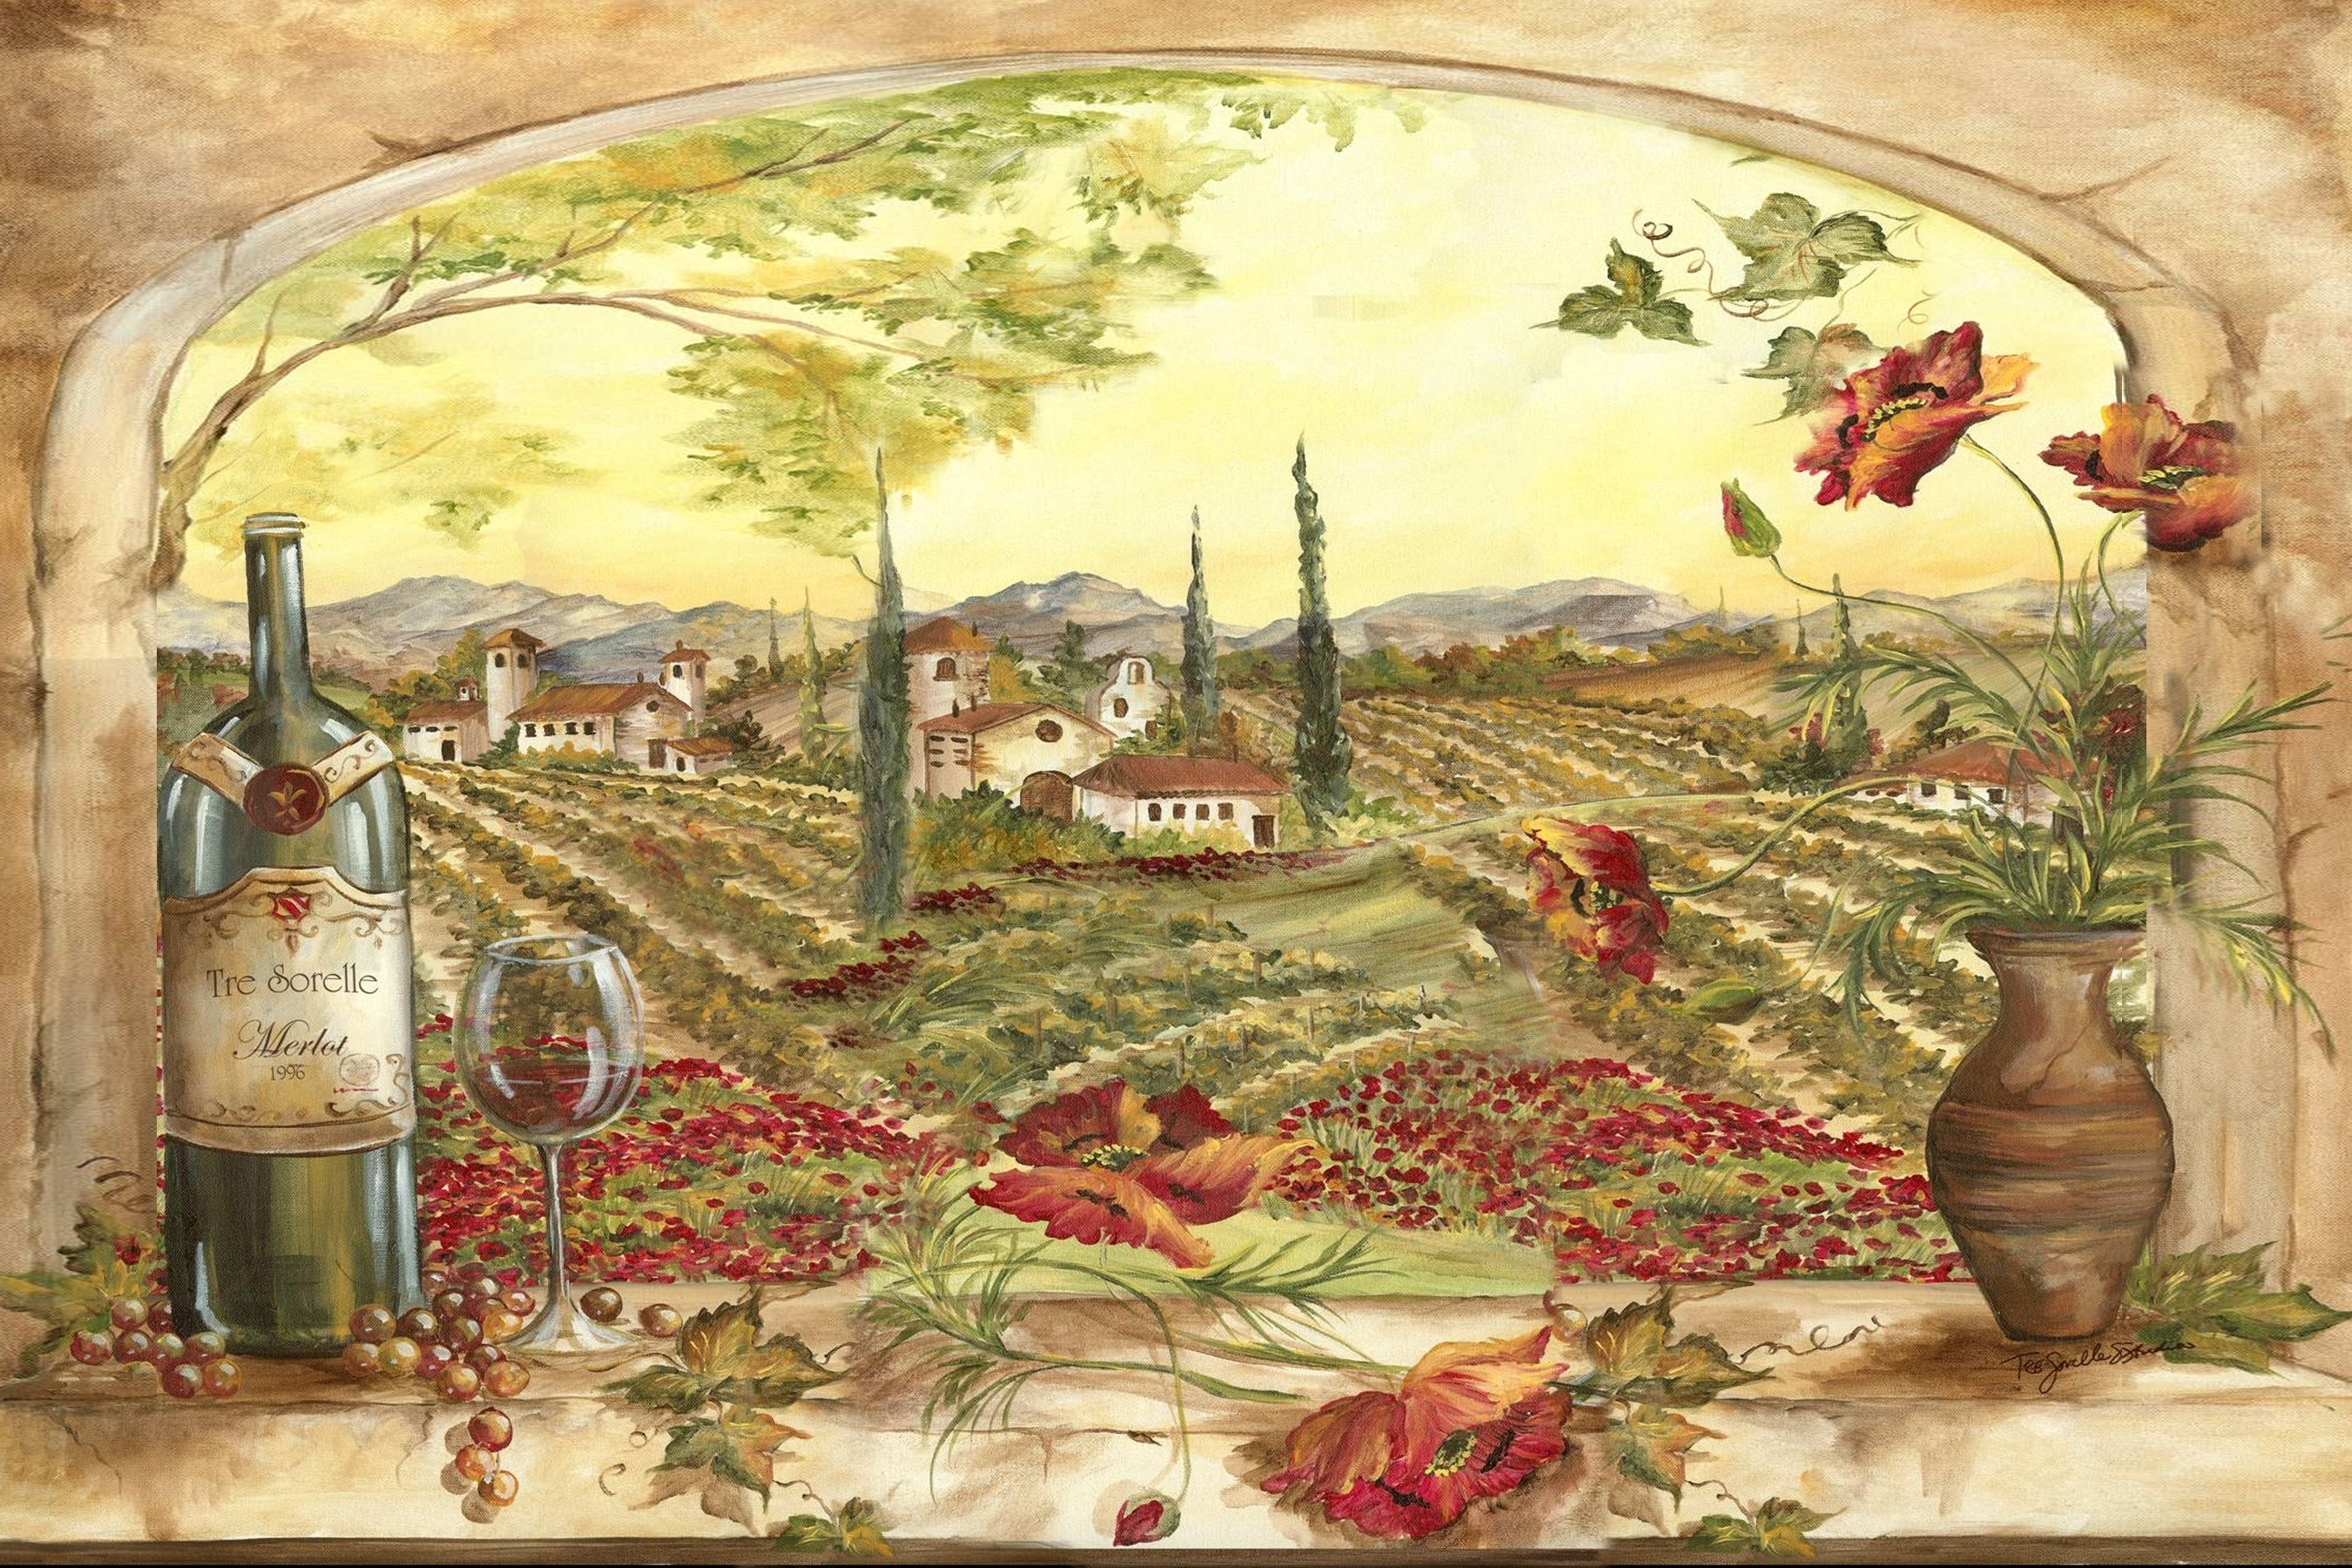 Tuscan Kitchen Wall Art World Of Example, Tuscany Kitchen Wall Art With Regard To Current Tuscan Wall Art (View 7 of 20)